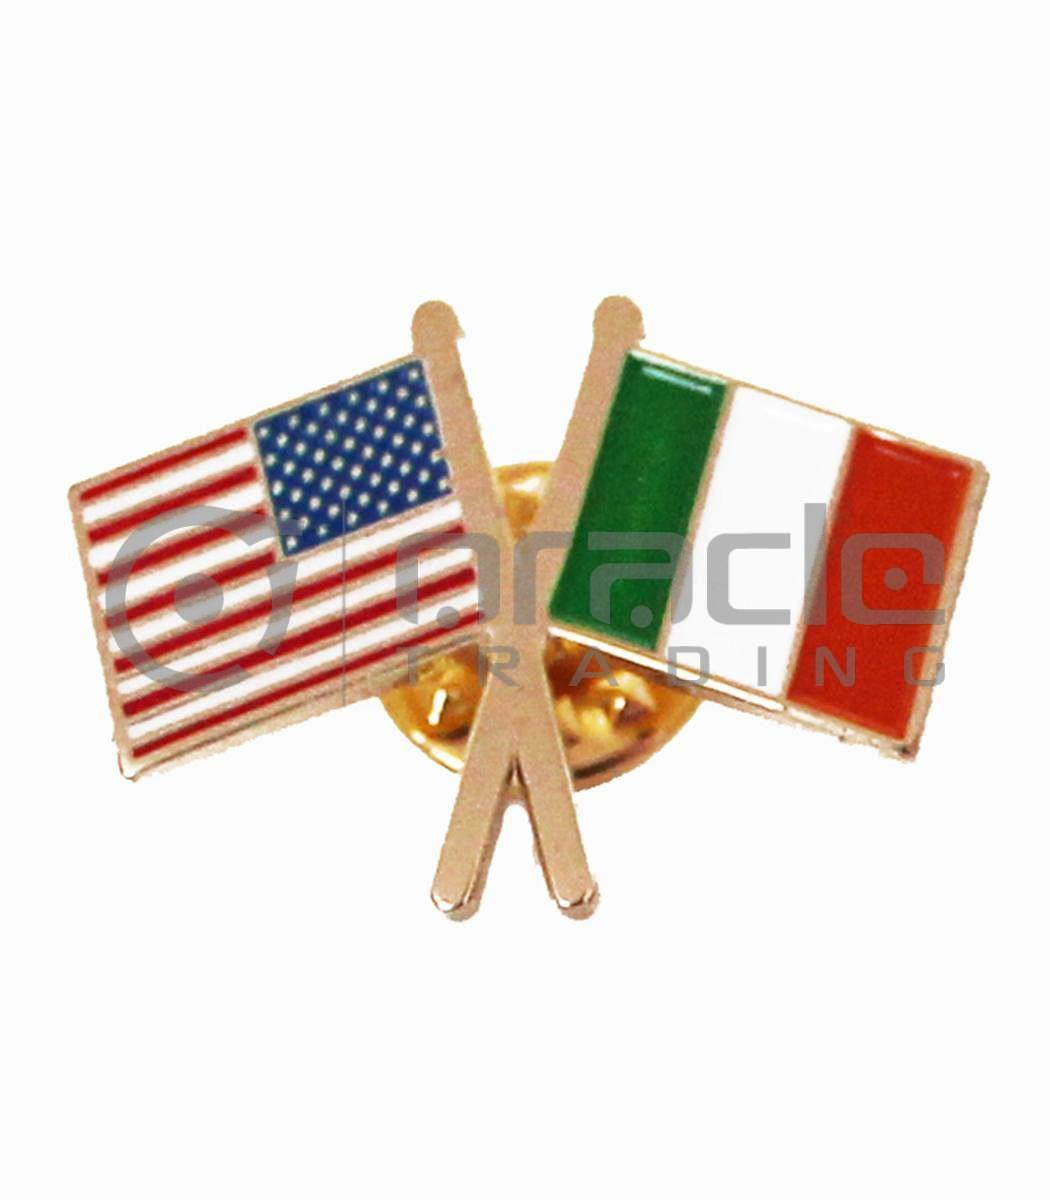 Italian American Friendship Lapel Pin